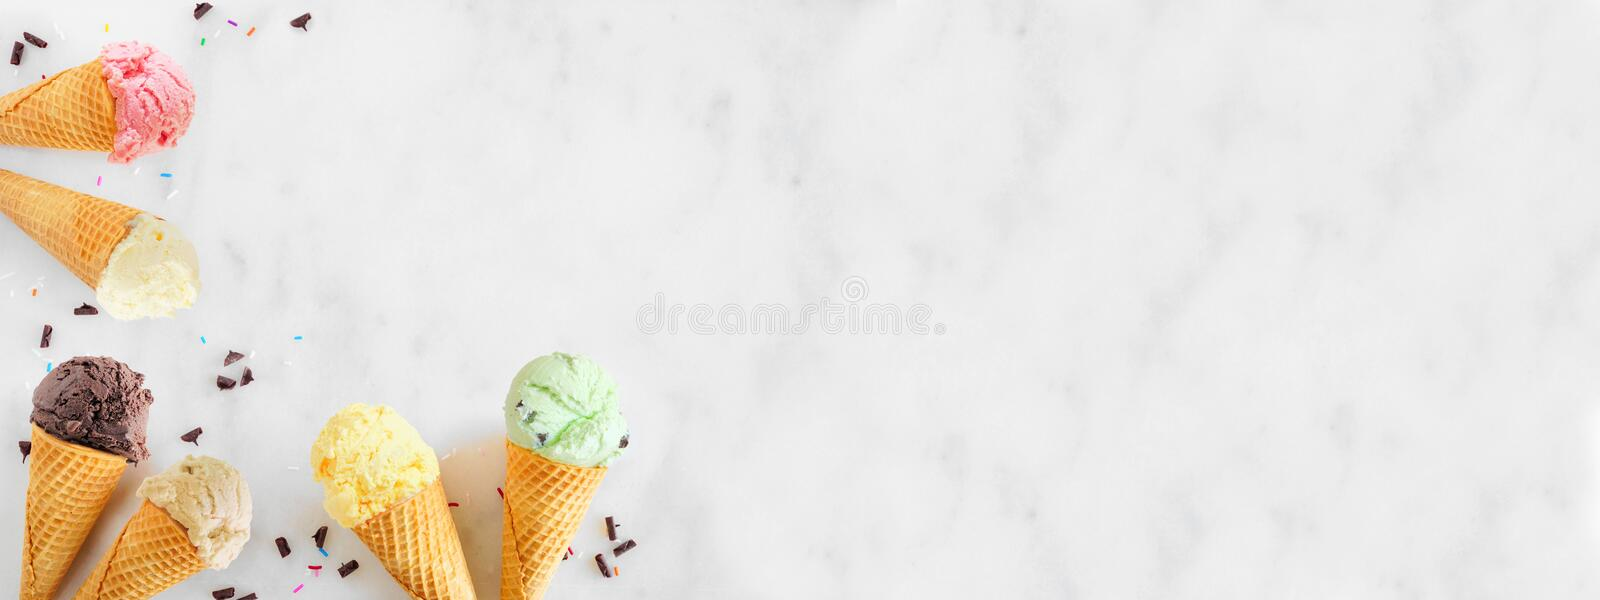 2 567 Ice Cream Banner Photos Free Royalty Free Stock Photos From Dreamstime Download free ice cream png images. dreamstime com